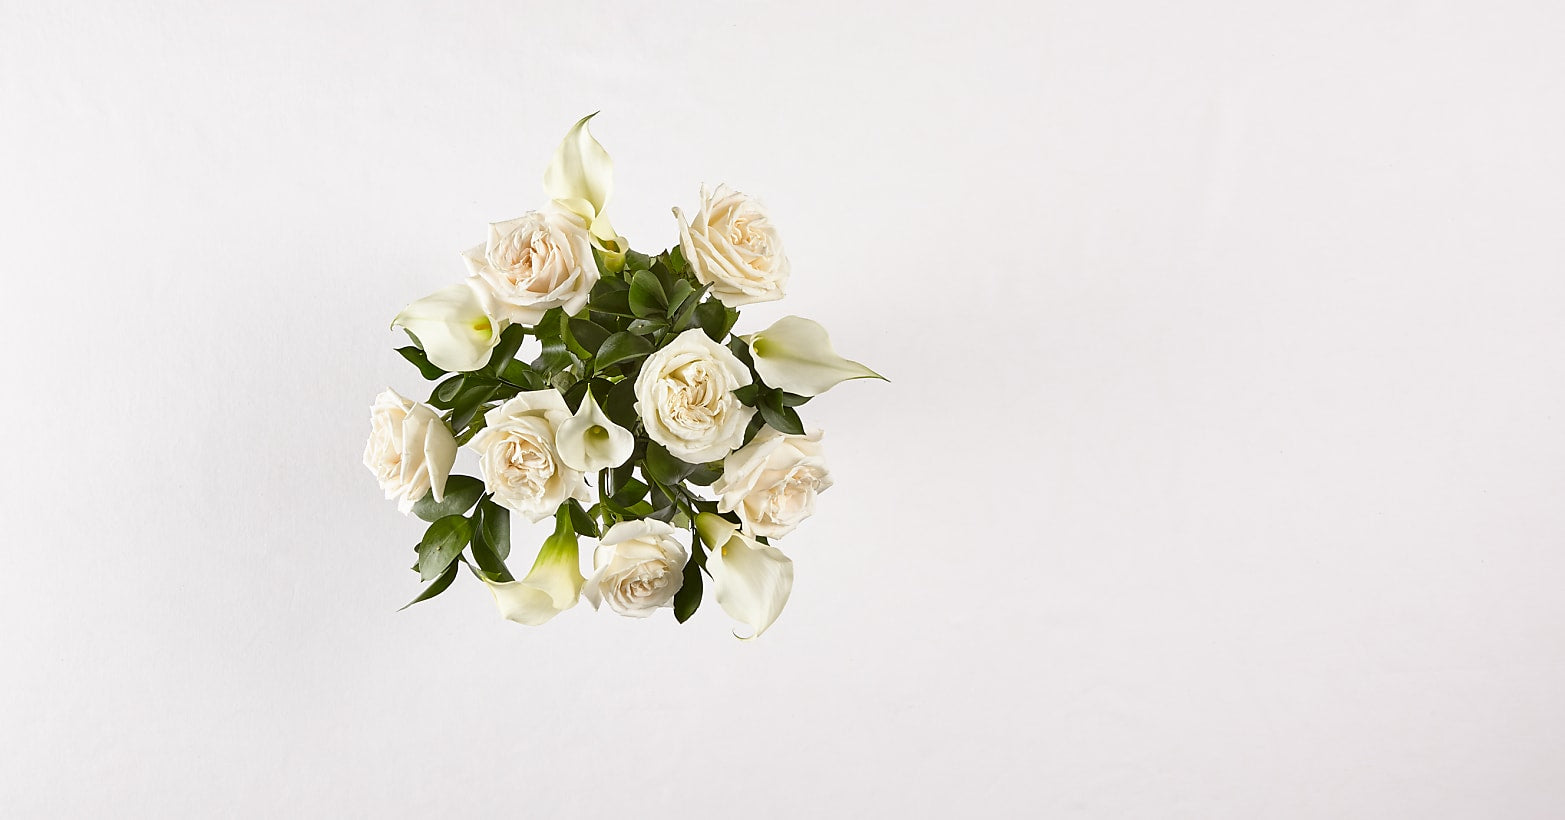 Vision in Ivory Rose and Calla Lily Bouquet - Image 3 Of 5